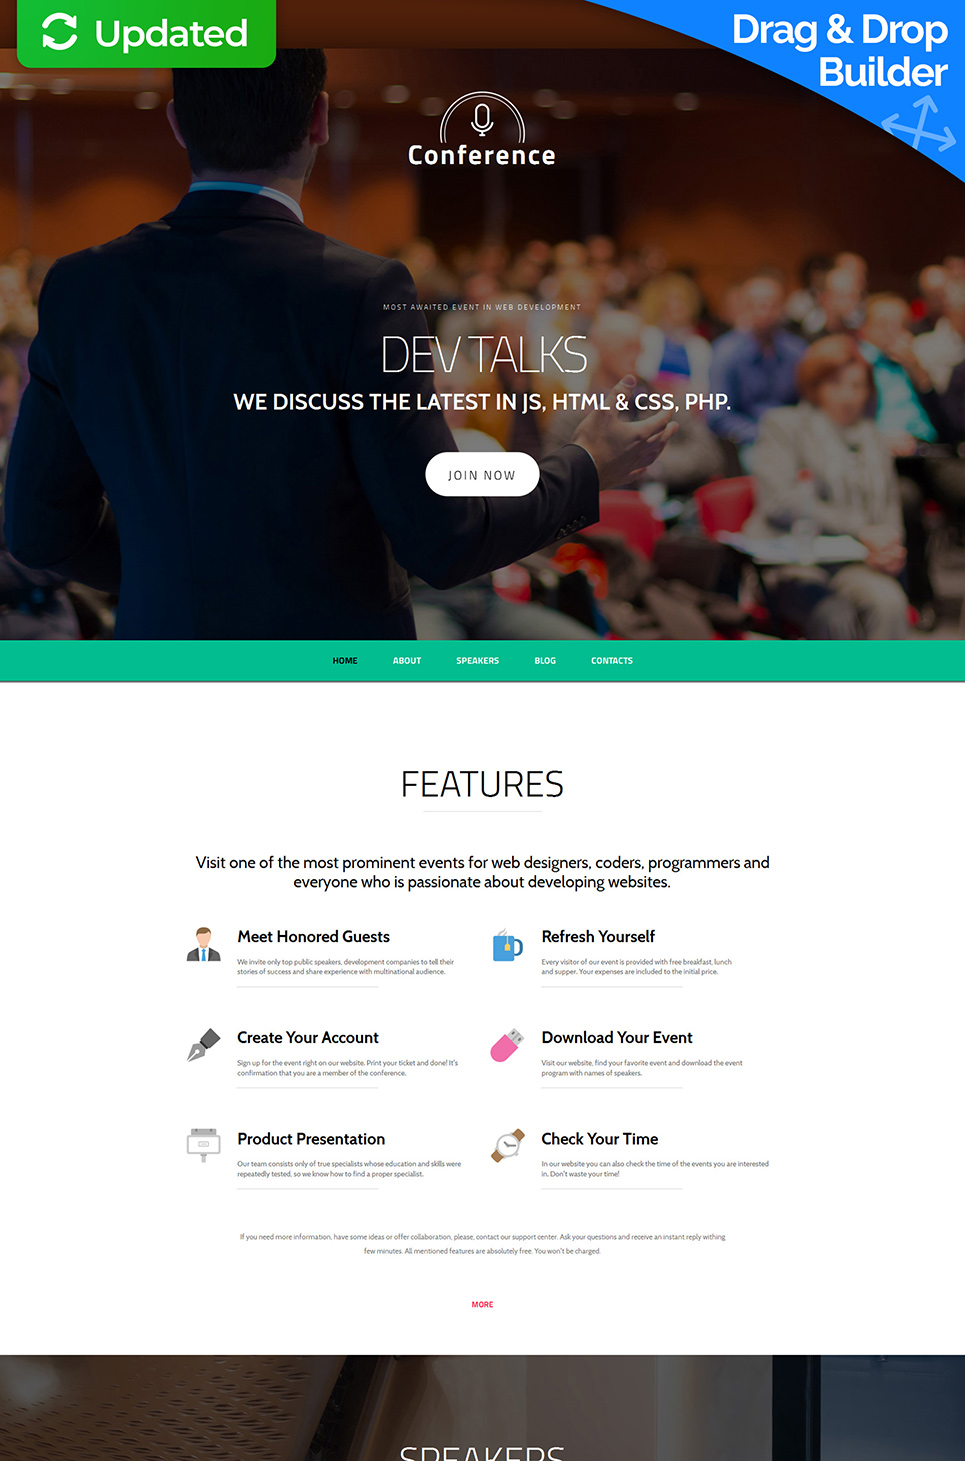 Fully-featured site for conferencing